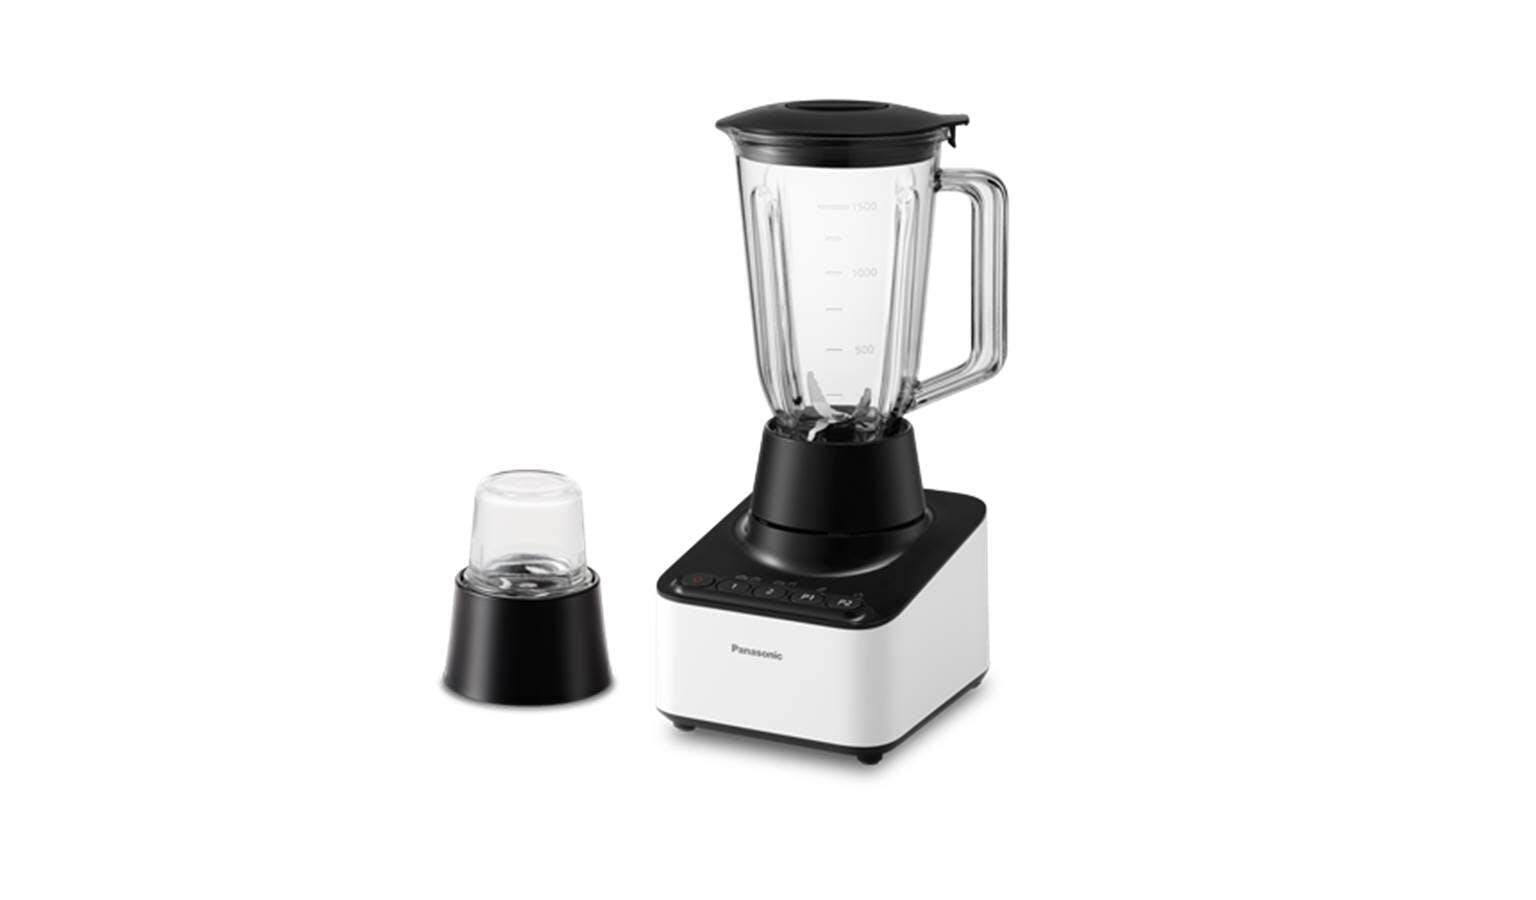 Panasonic (600W) 2.0L Ultimate Power Blade Blender MX-V300